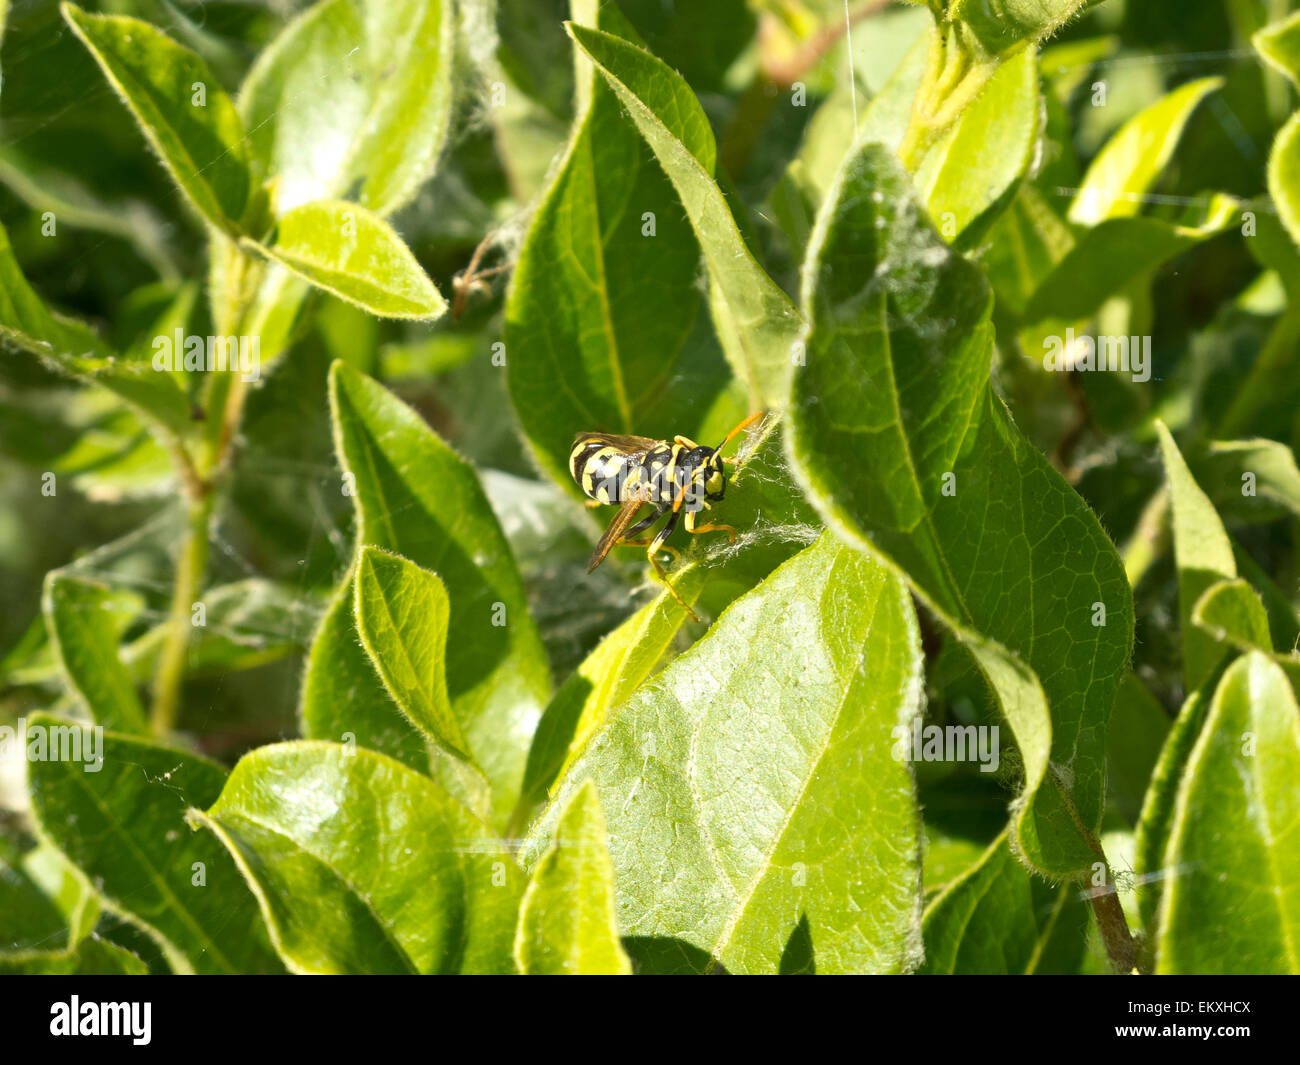 A common wasp perched on the green leaves of a bush on a sunny day, Cáceres, Spain. - Stock Image